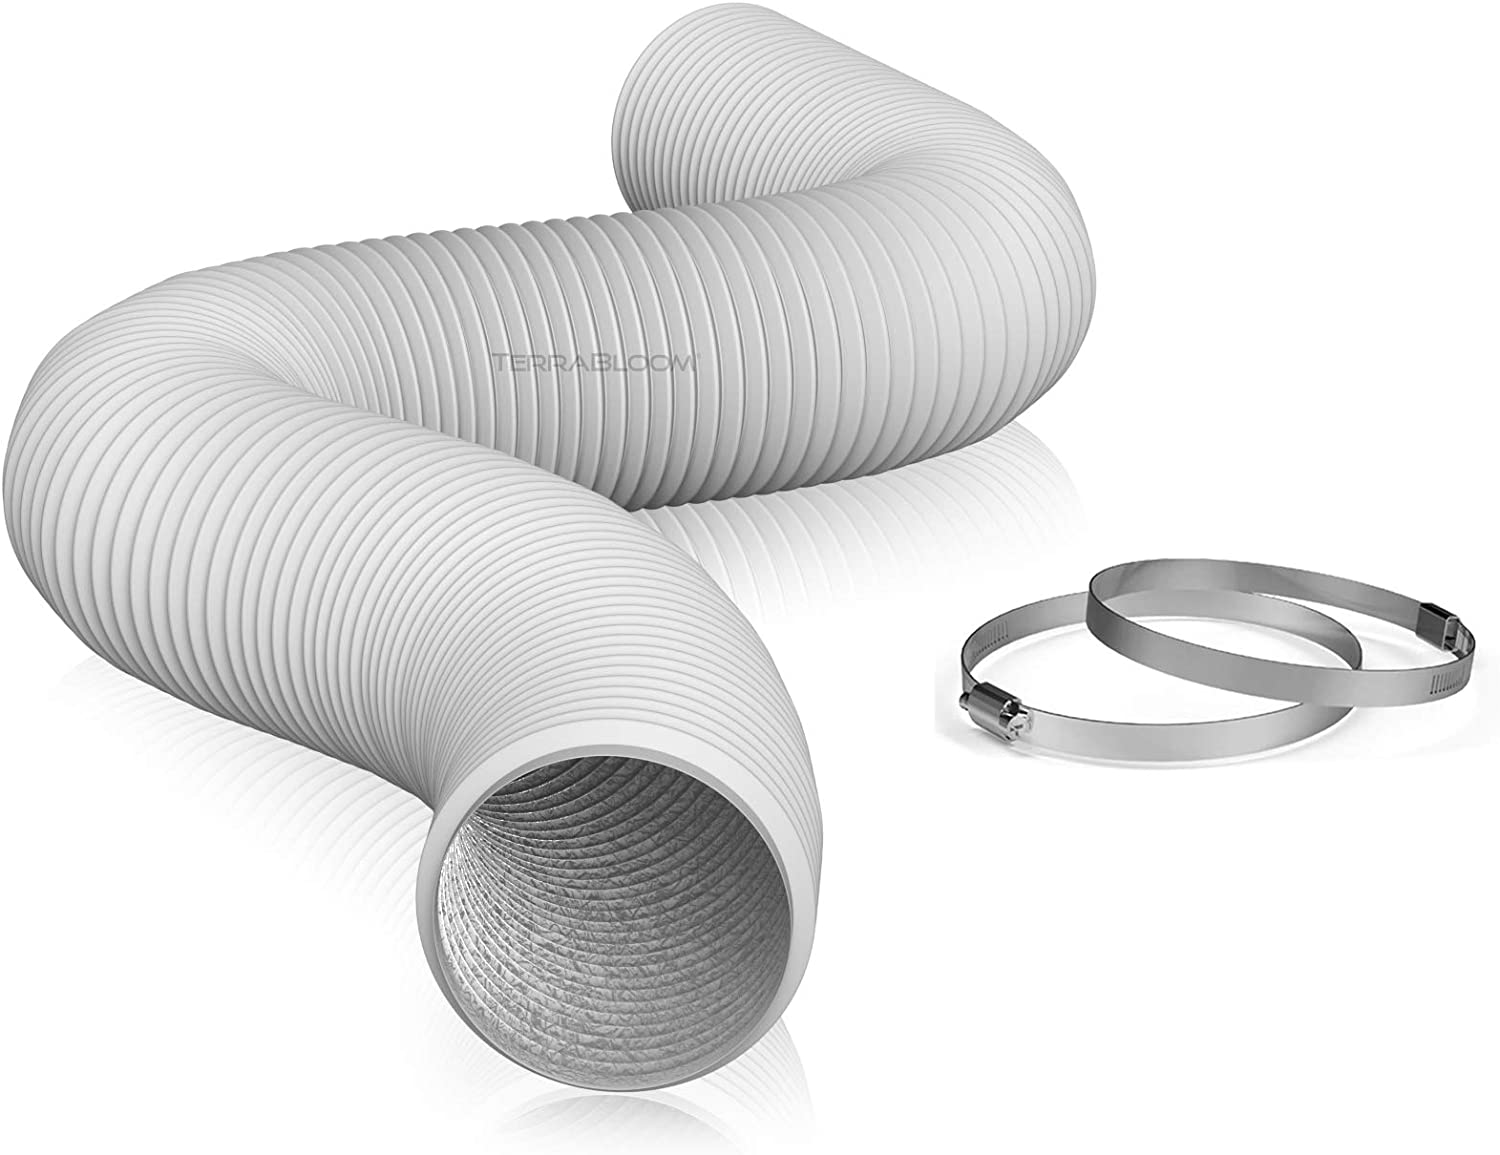 TerraBloom Fixed price for sale Flexible 6 Inch Ducting White Durable – Max 70% OFF Feet 25